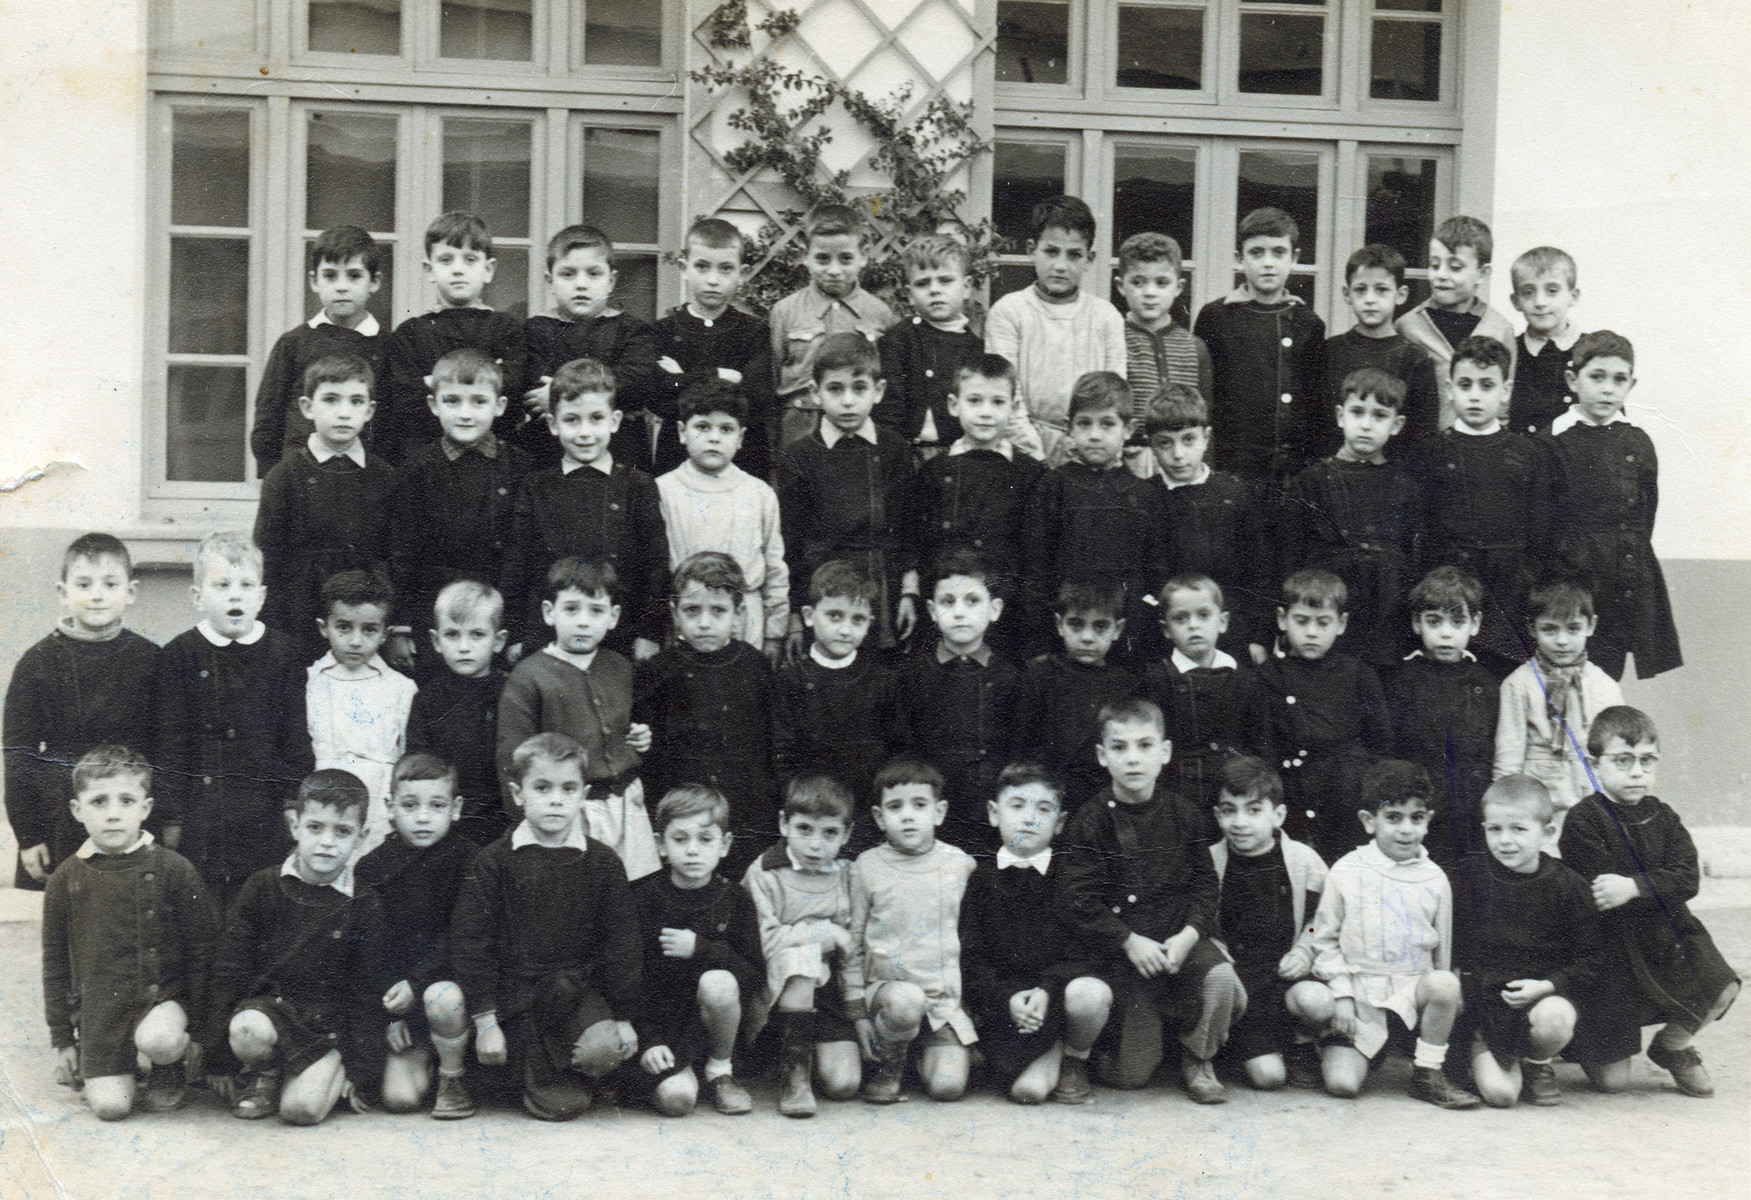 Ronnie Khayat 's first grade class in Tunis prior to his family's immigration to Israel.  Ronnie is in the first row, third boy from right. He is wearing a white shirt.